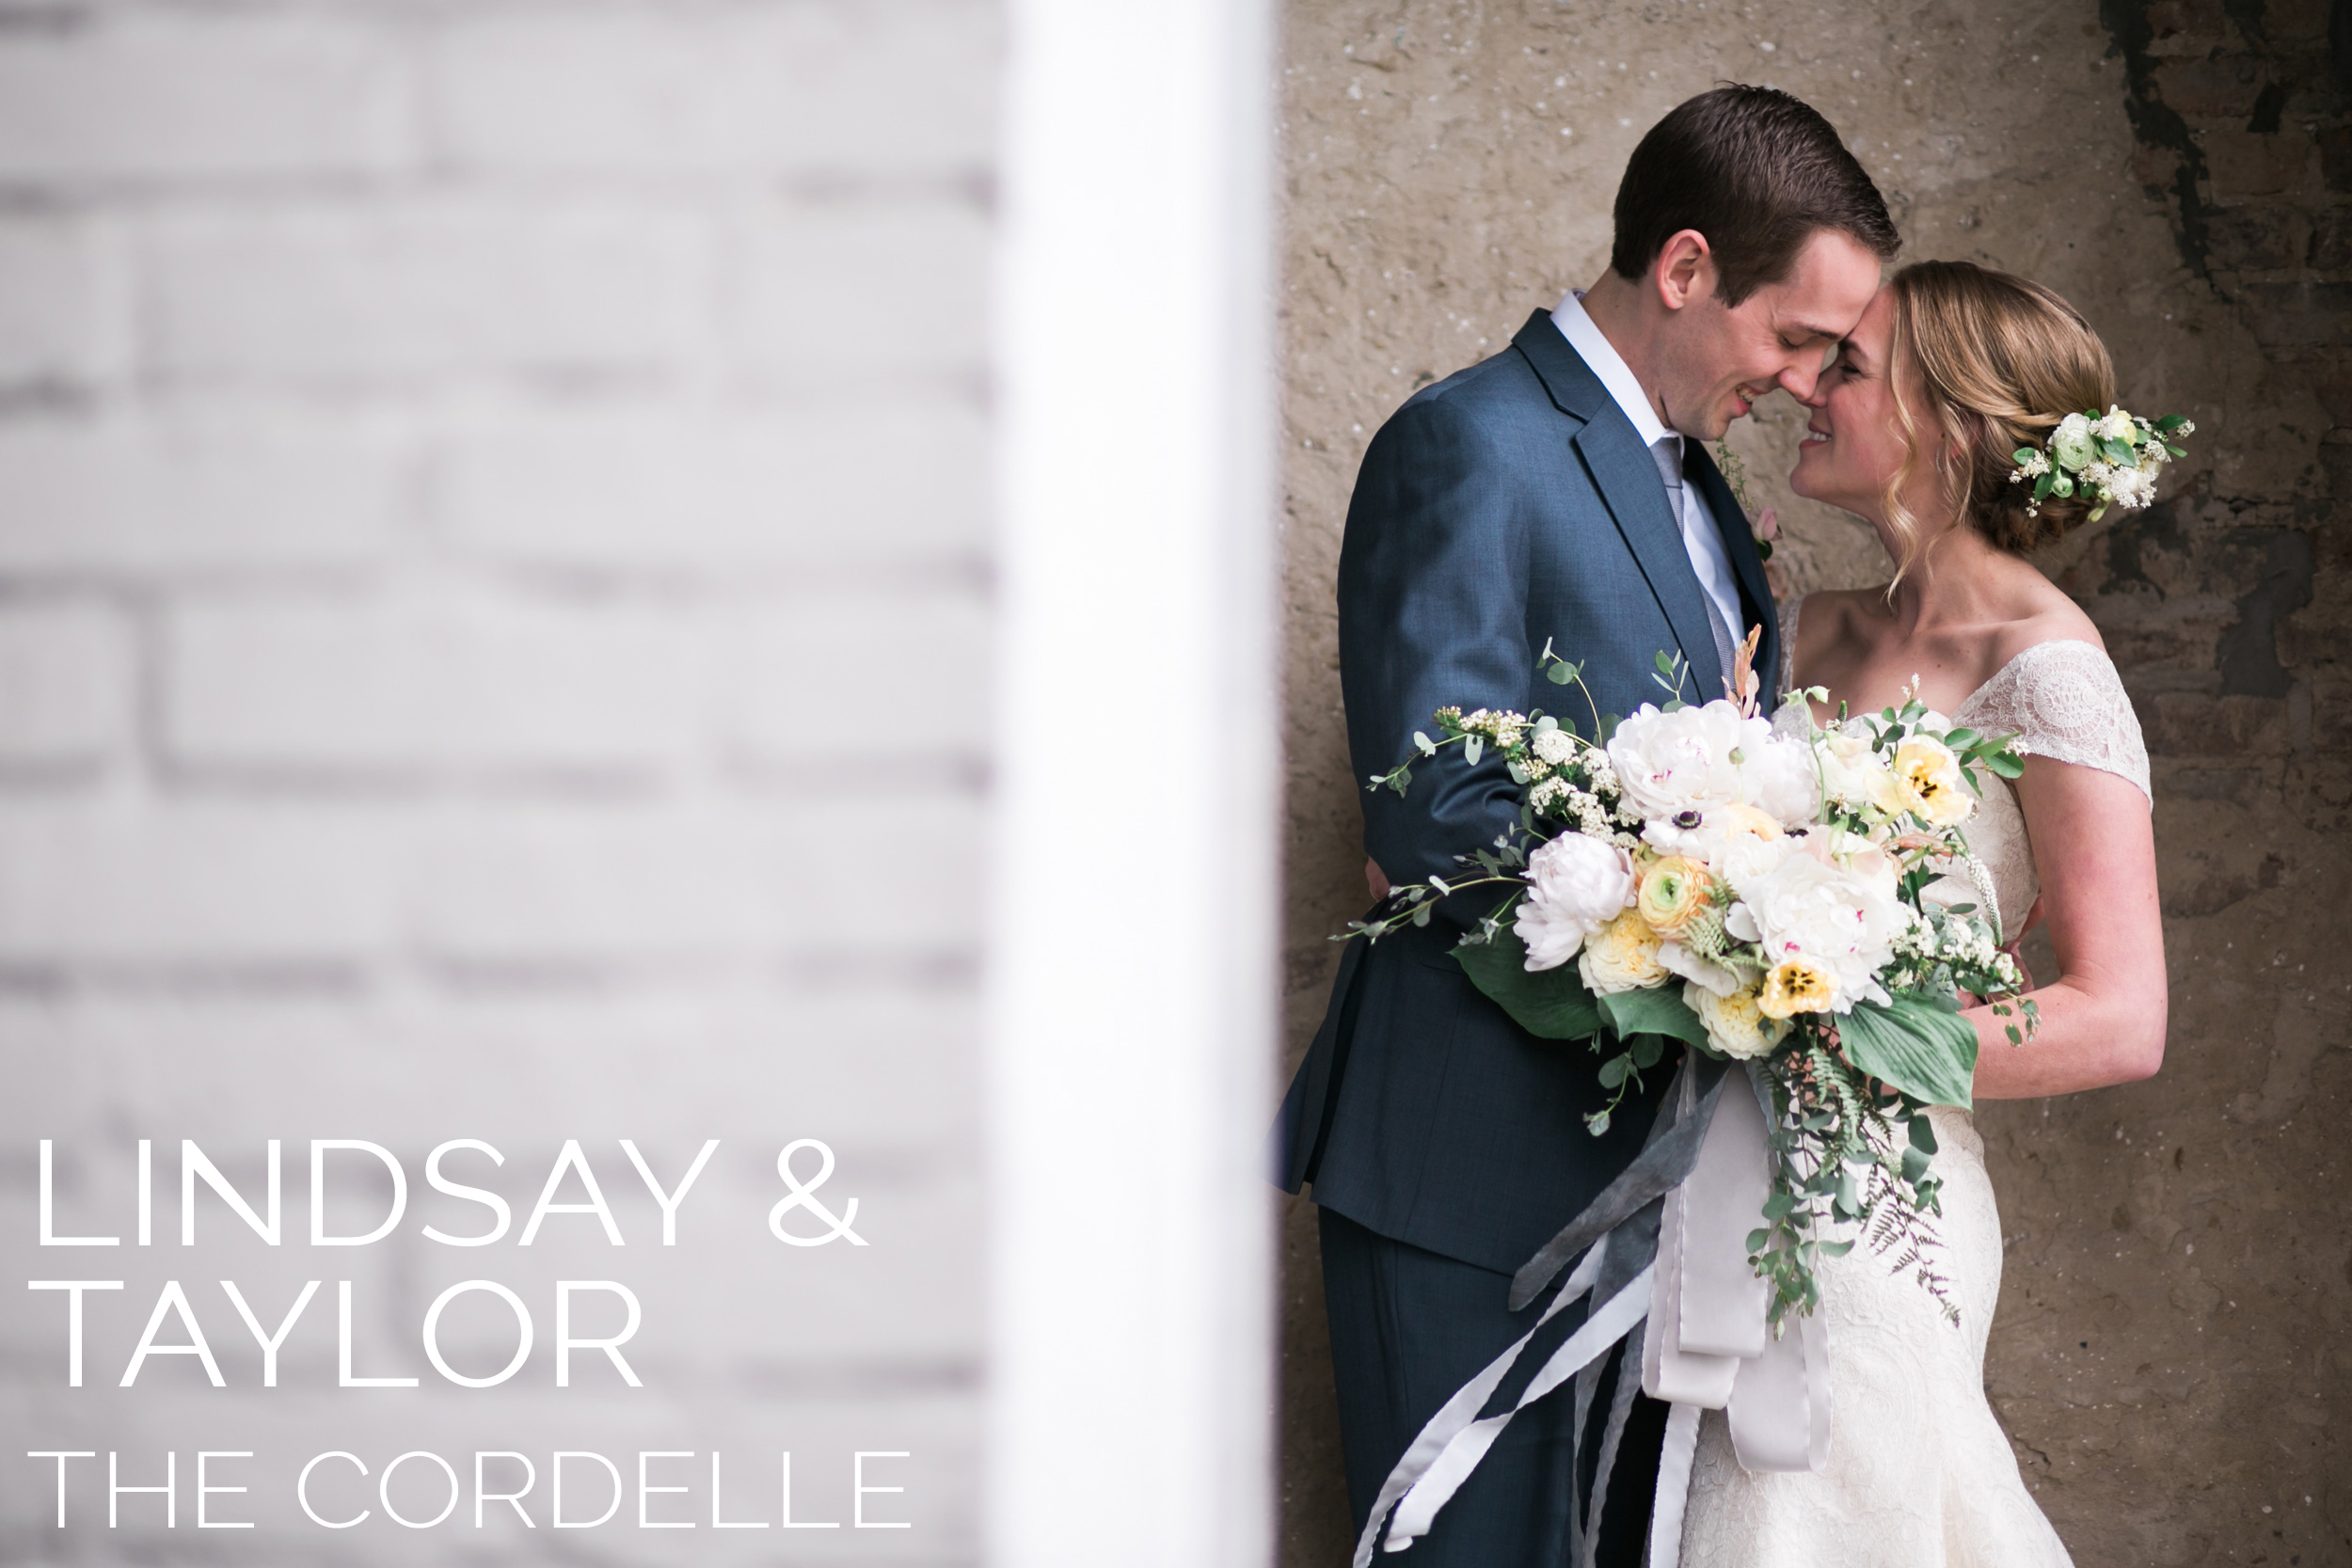 Wedding at The Cordelle